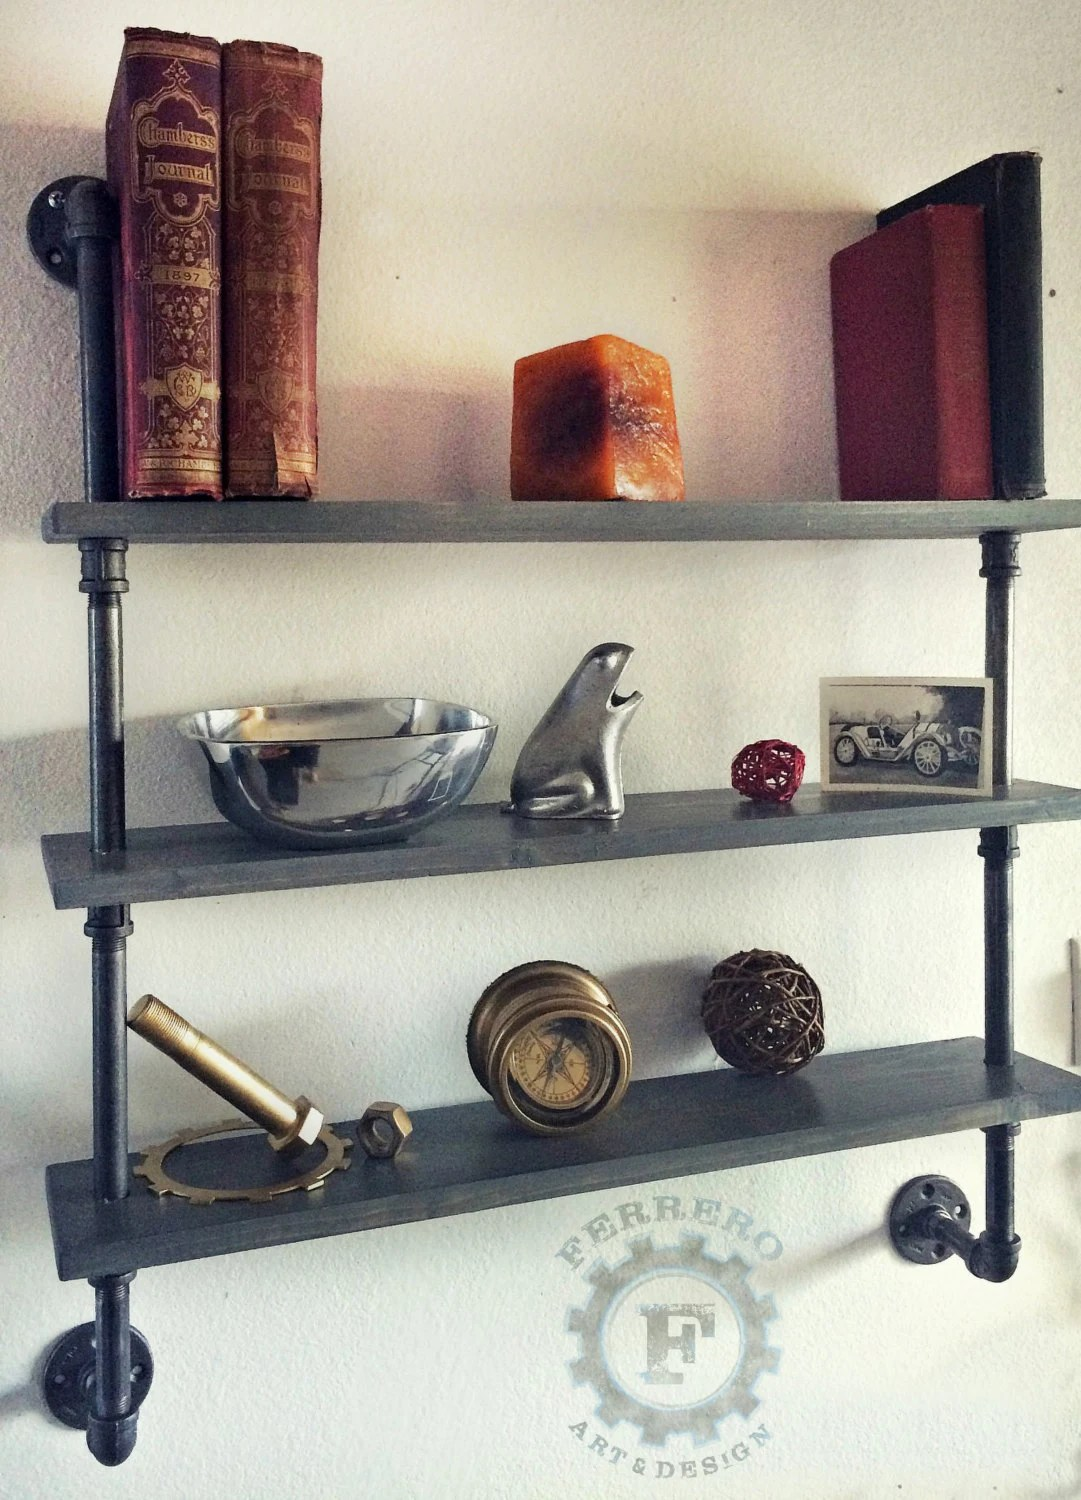 Steampunk Wall Shelves Steampunk Shelves Shelving Shelf Pipe Shelf Industrial Shelves